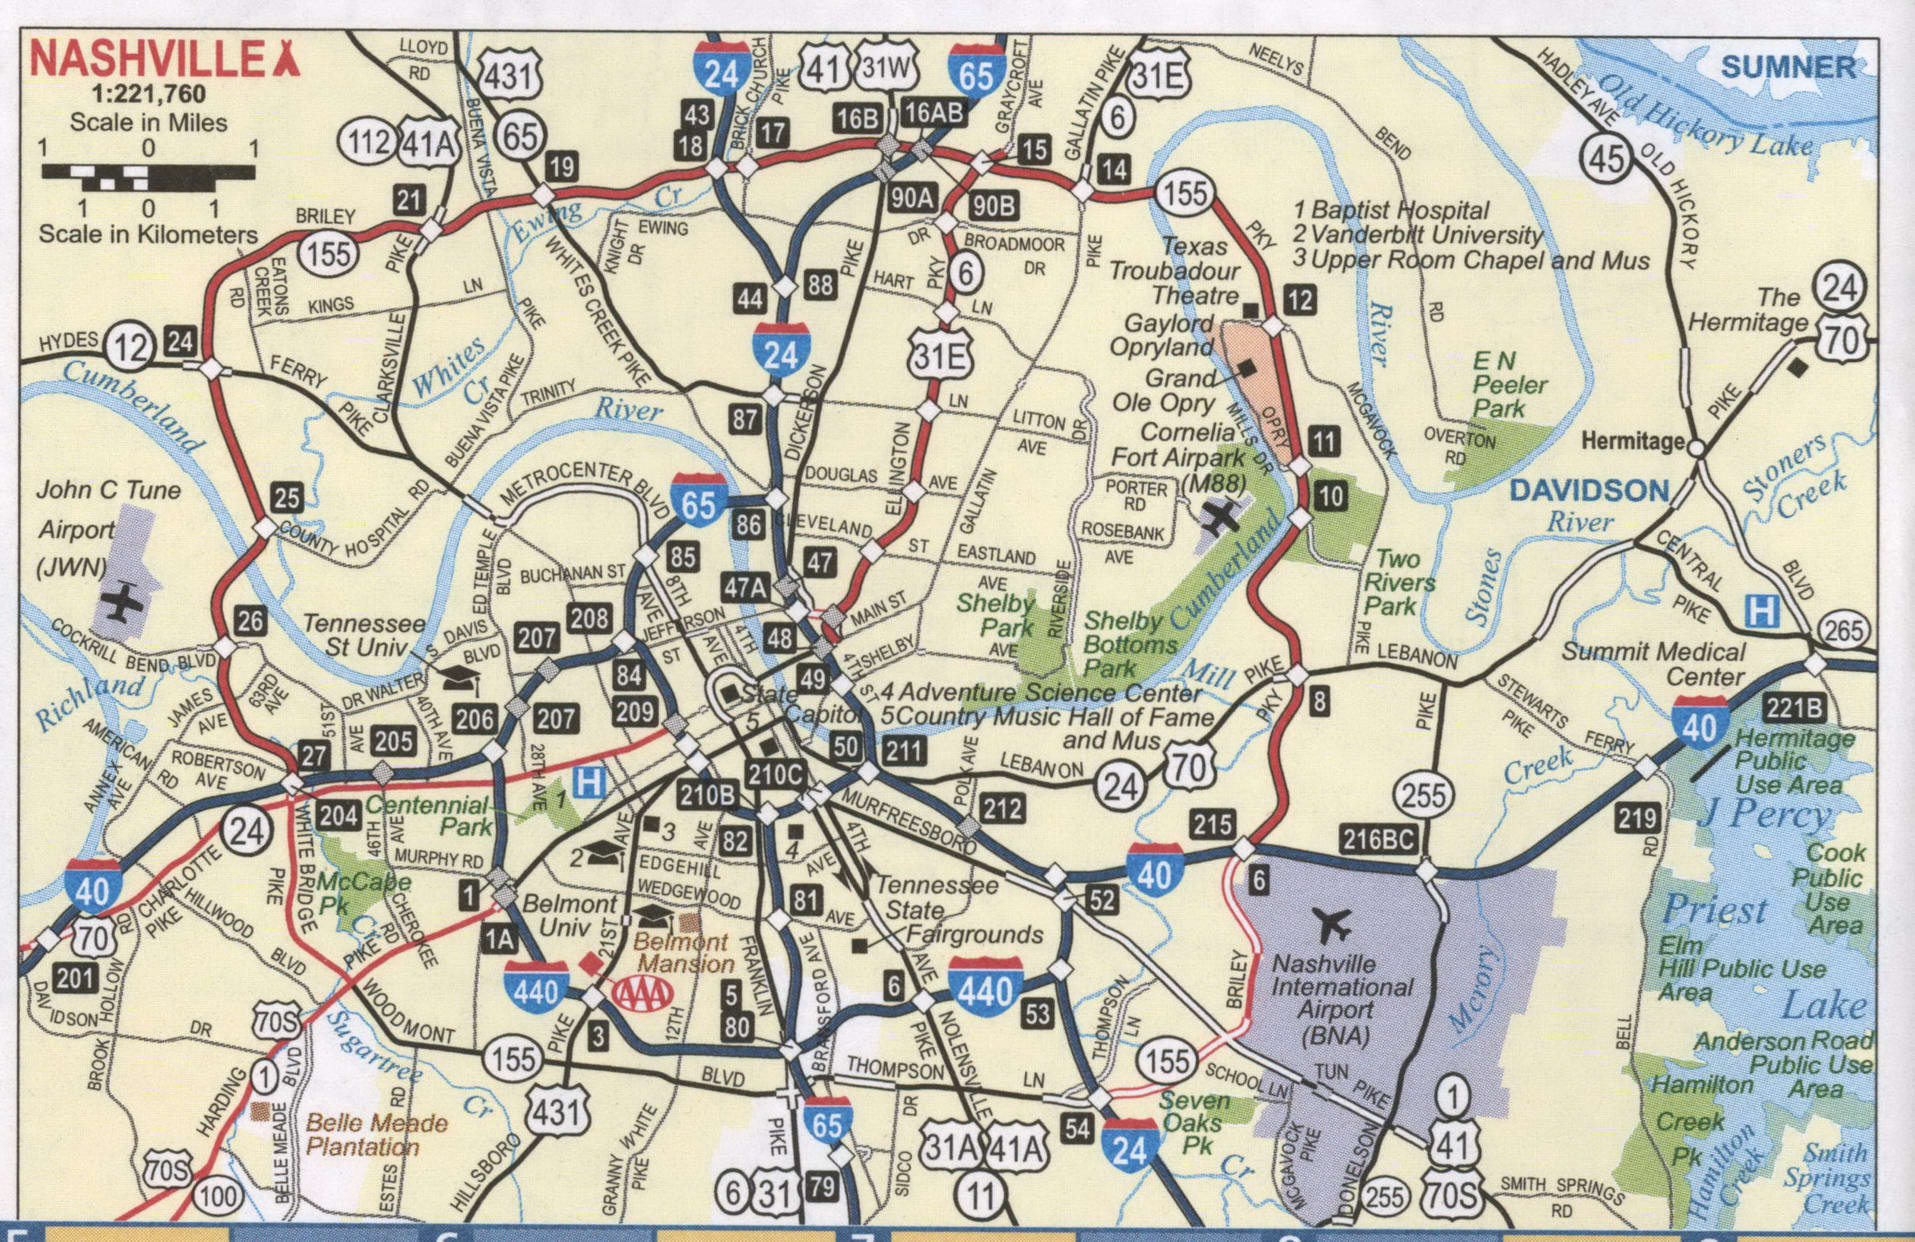 Nashville road map